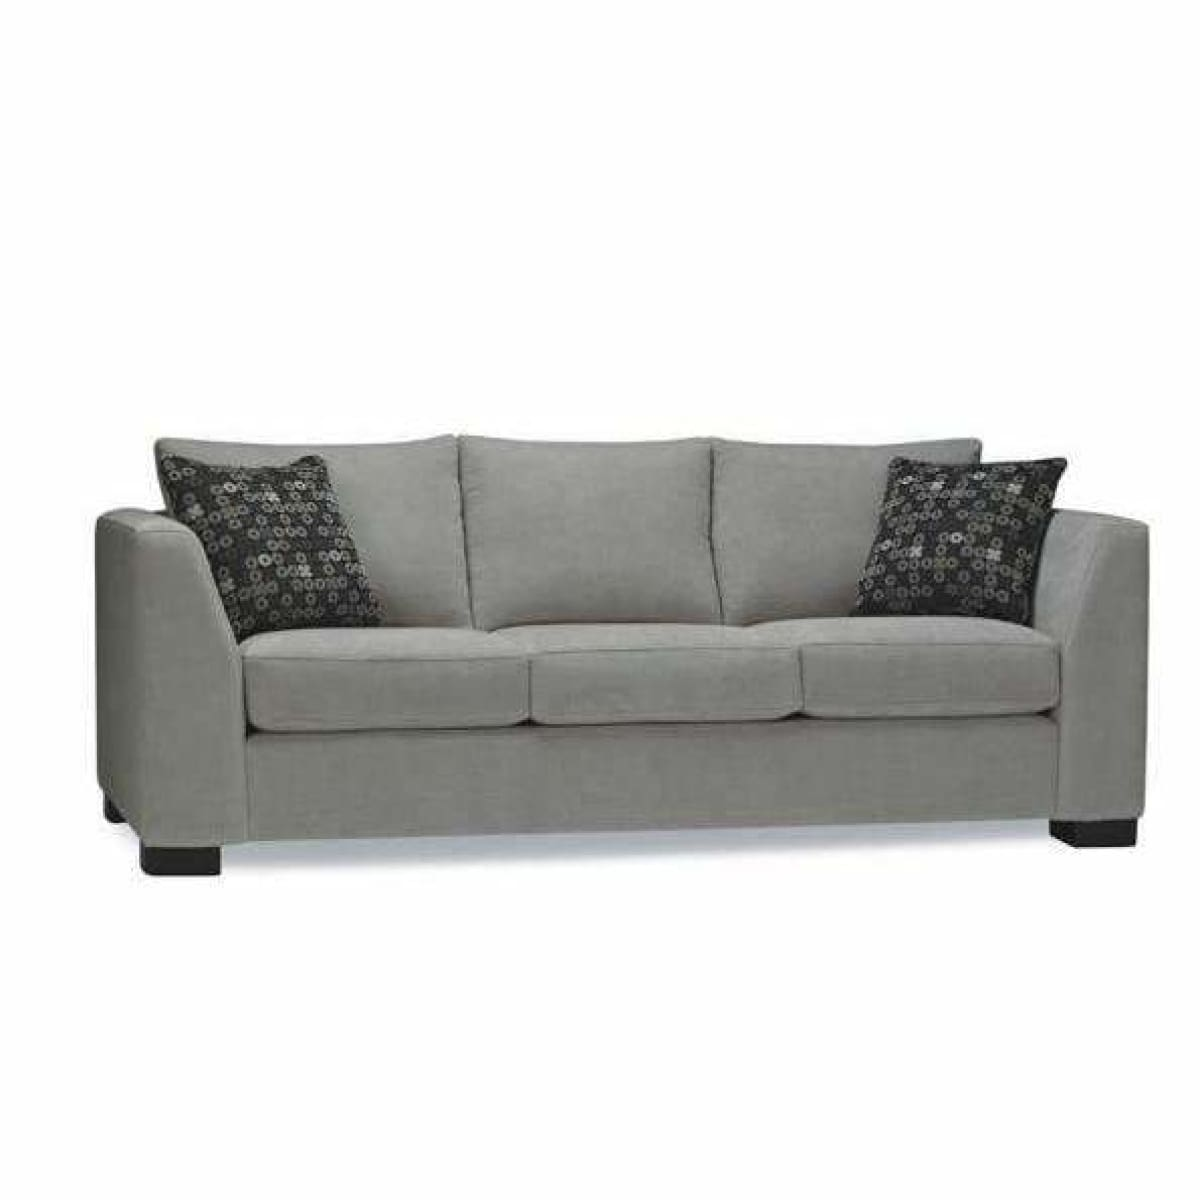 Eaton Fabric Sofa - sofa